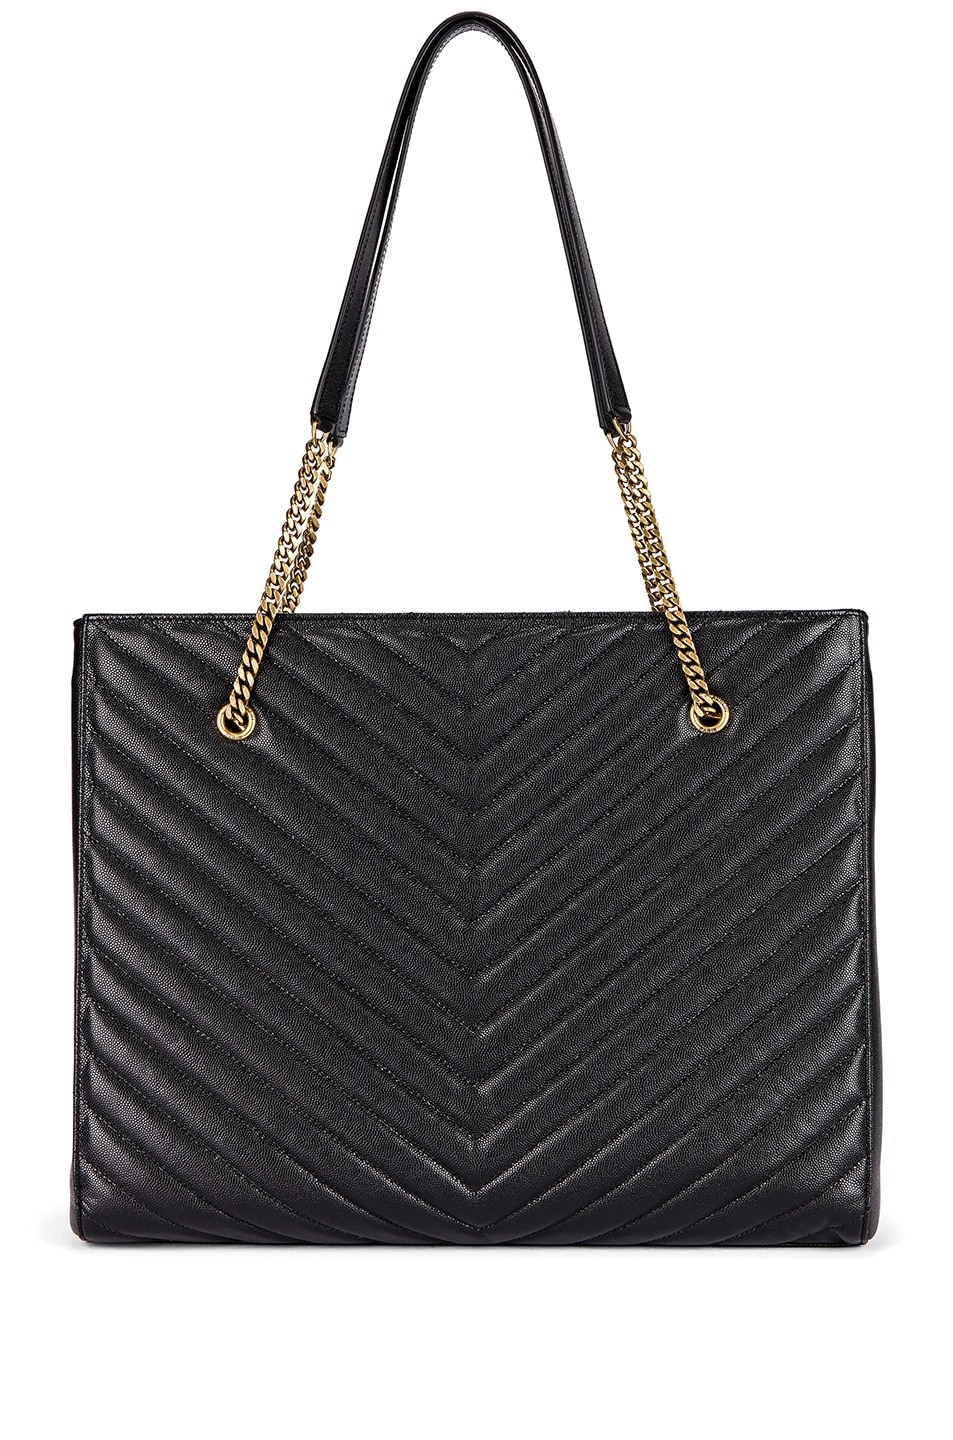 Image 2 of Saint Laurent Jumbo Tribeca Bag in Black